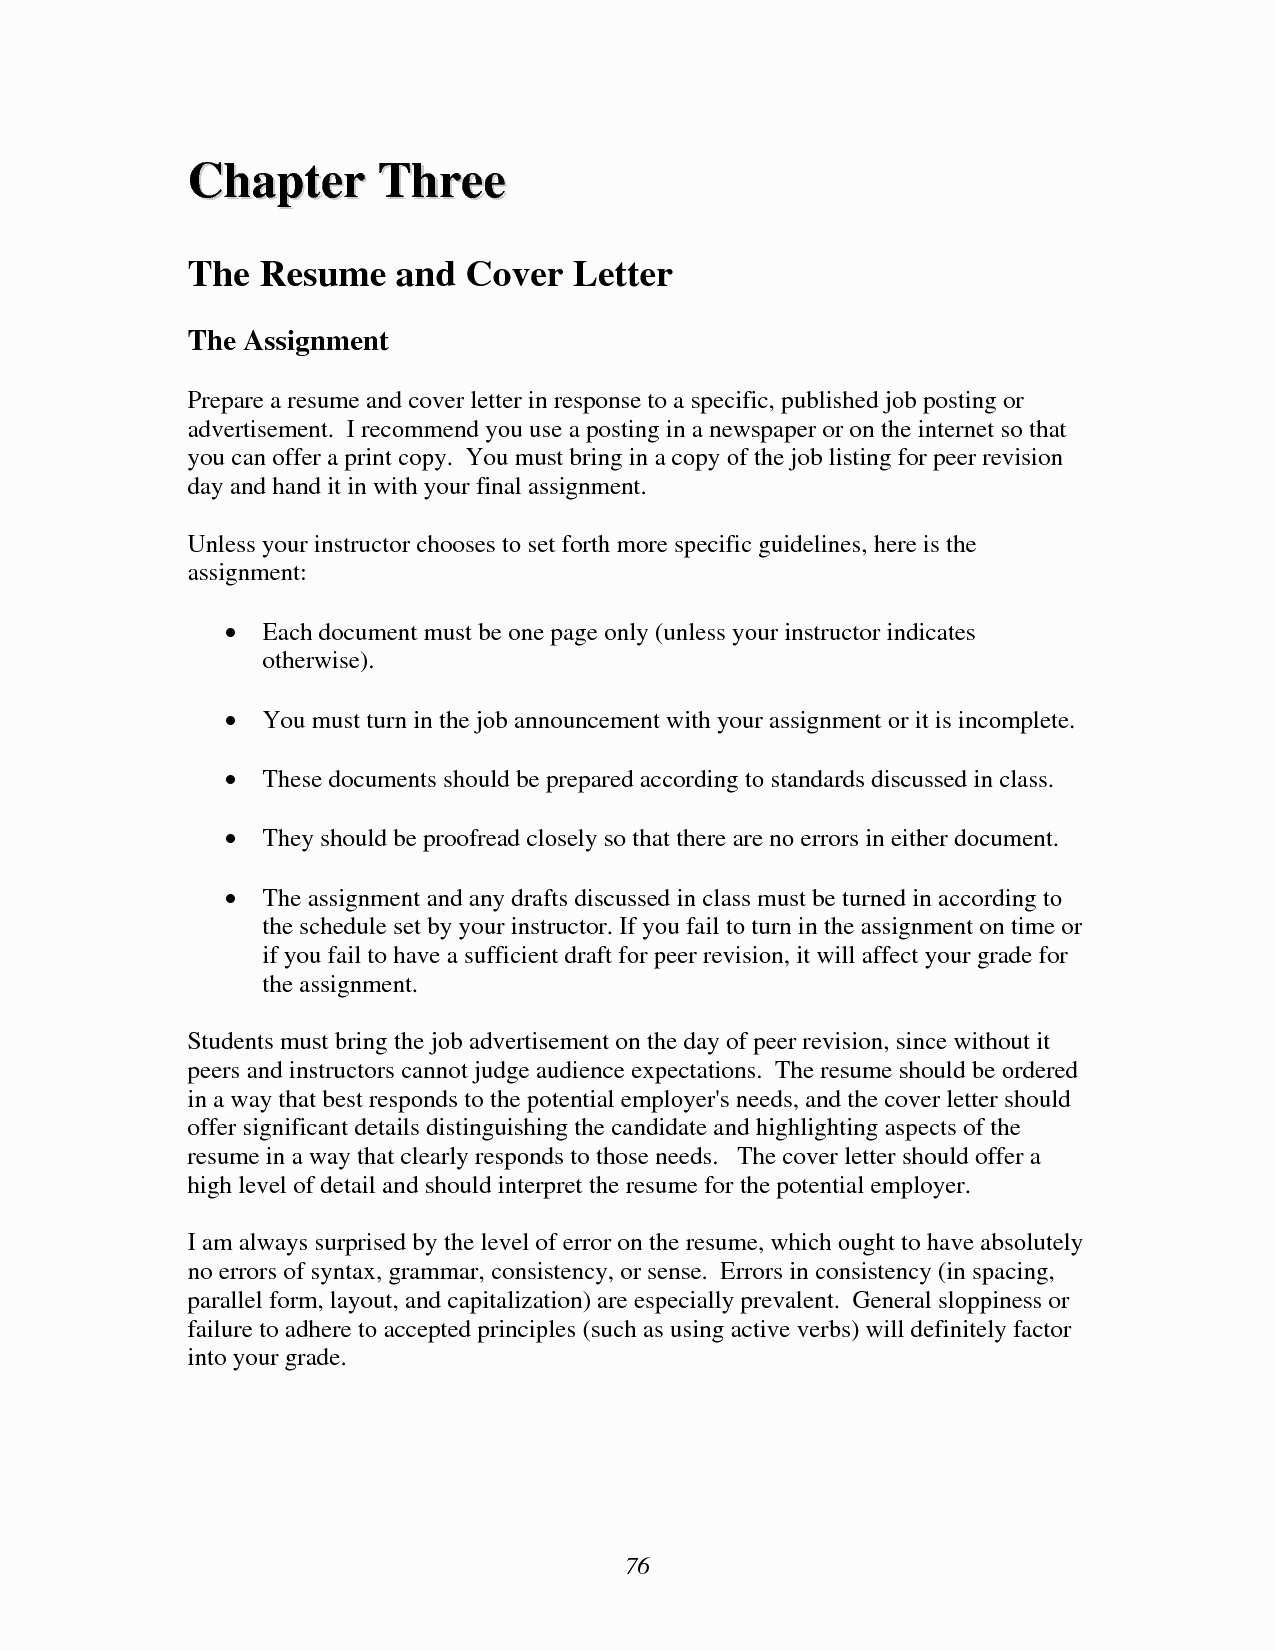 Free Employment Cover Letter Template - Resume and Cover Letter Template Beautiful Fresh Job Fer Letter